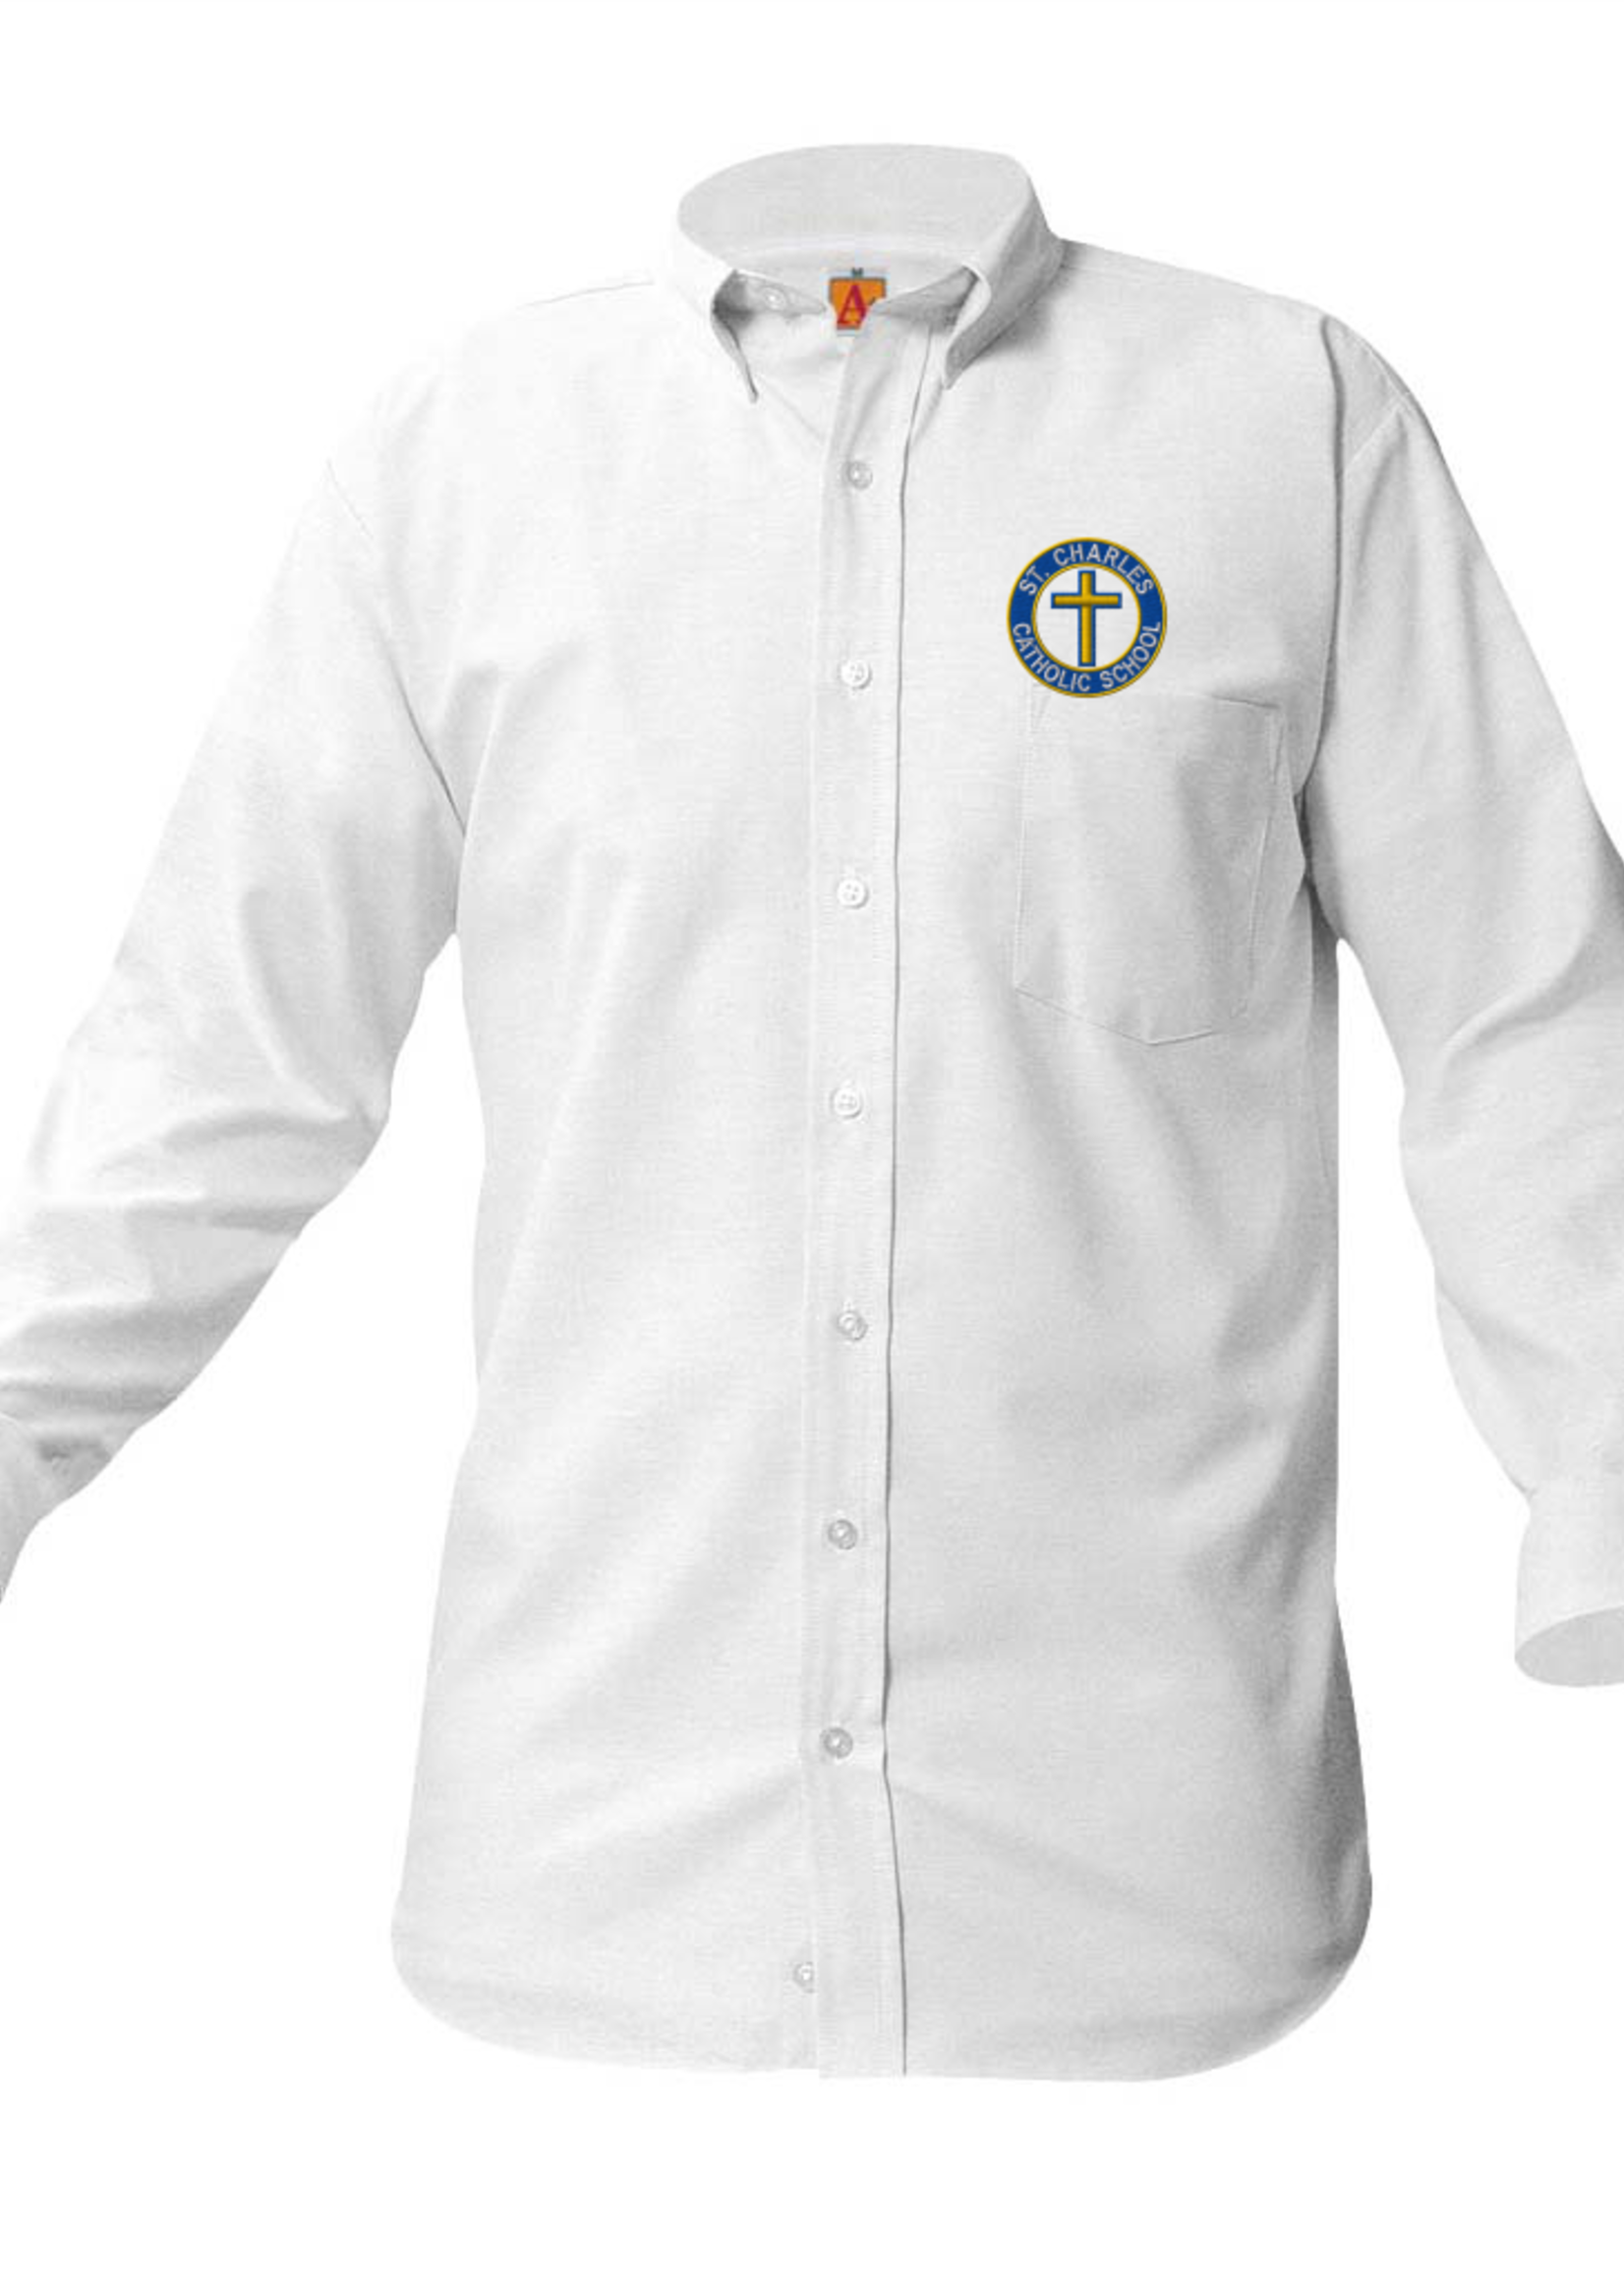 Null SCCS White Long Sleeve Oxford Shirt